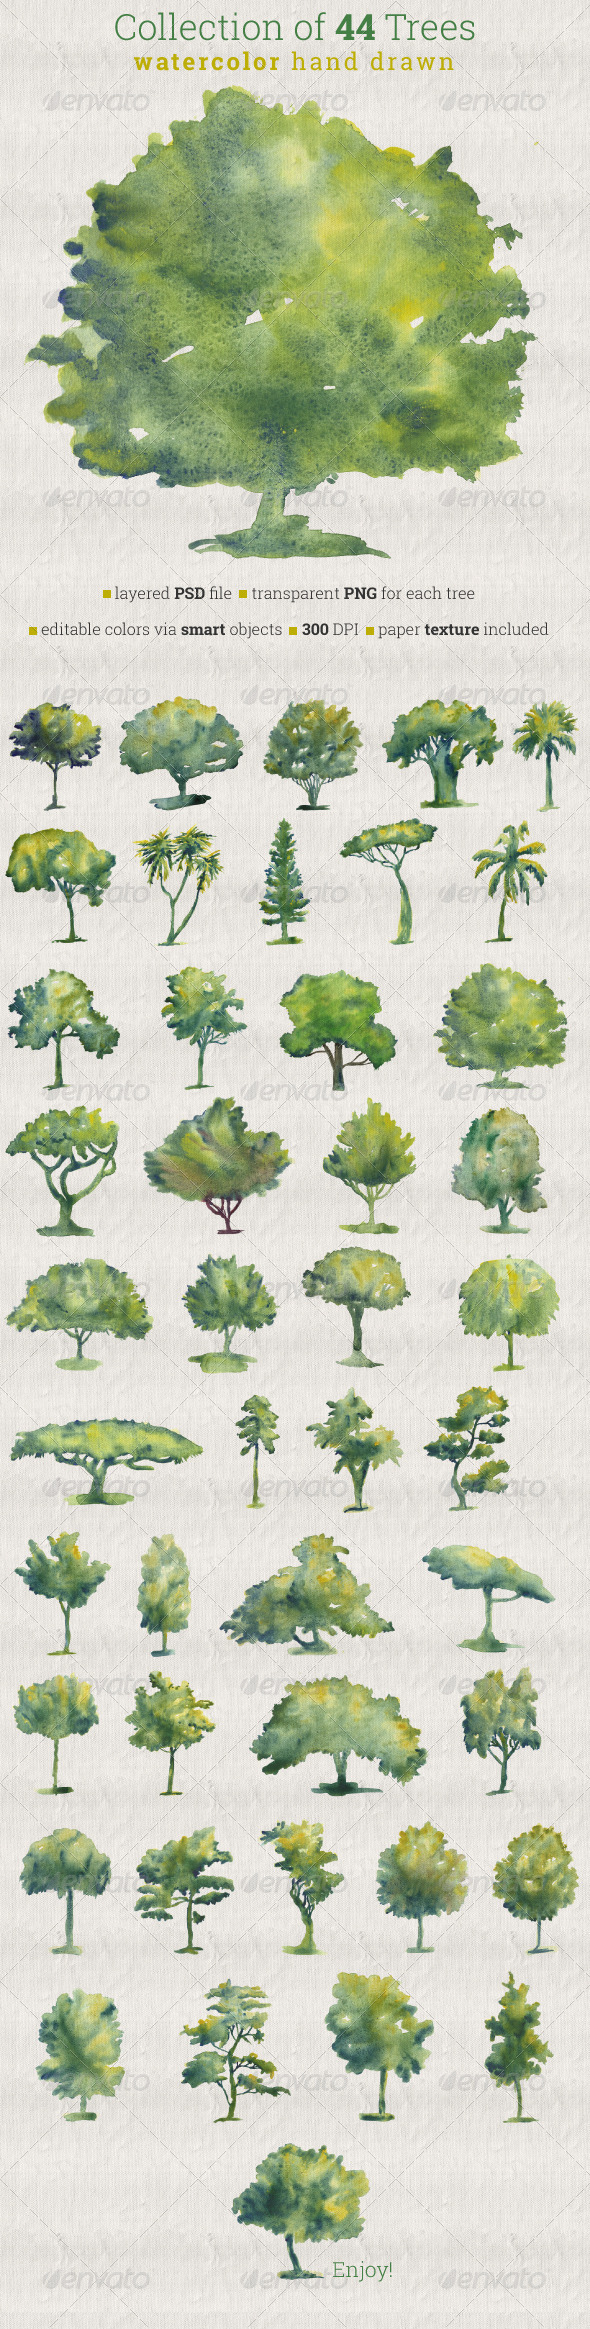 Collection of 44 Watercolor Trees - Nature Backgrounds